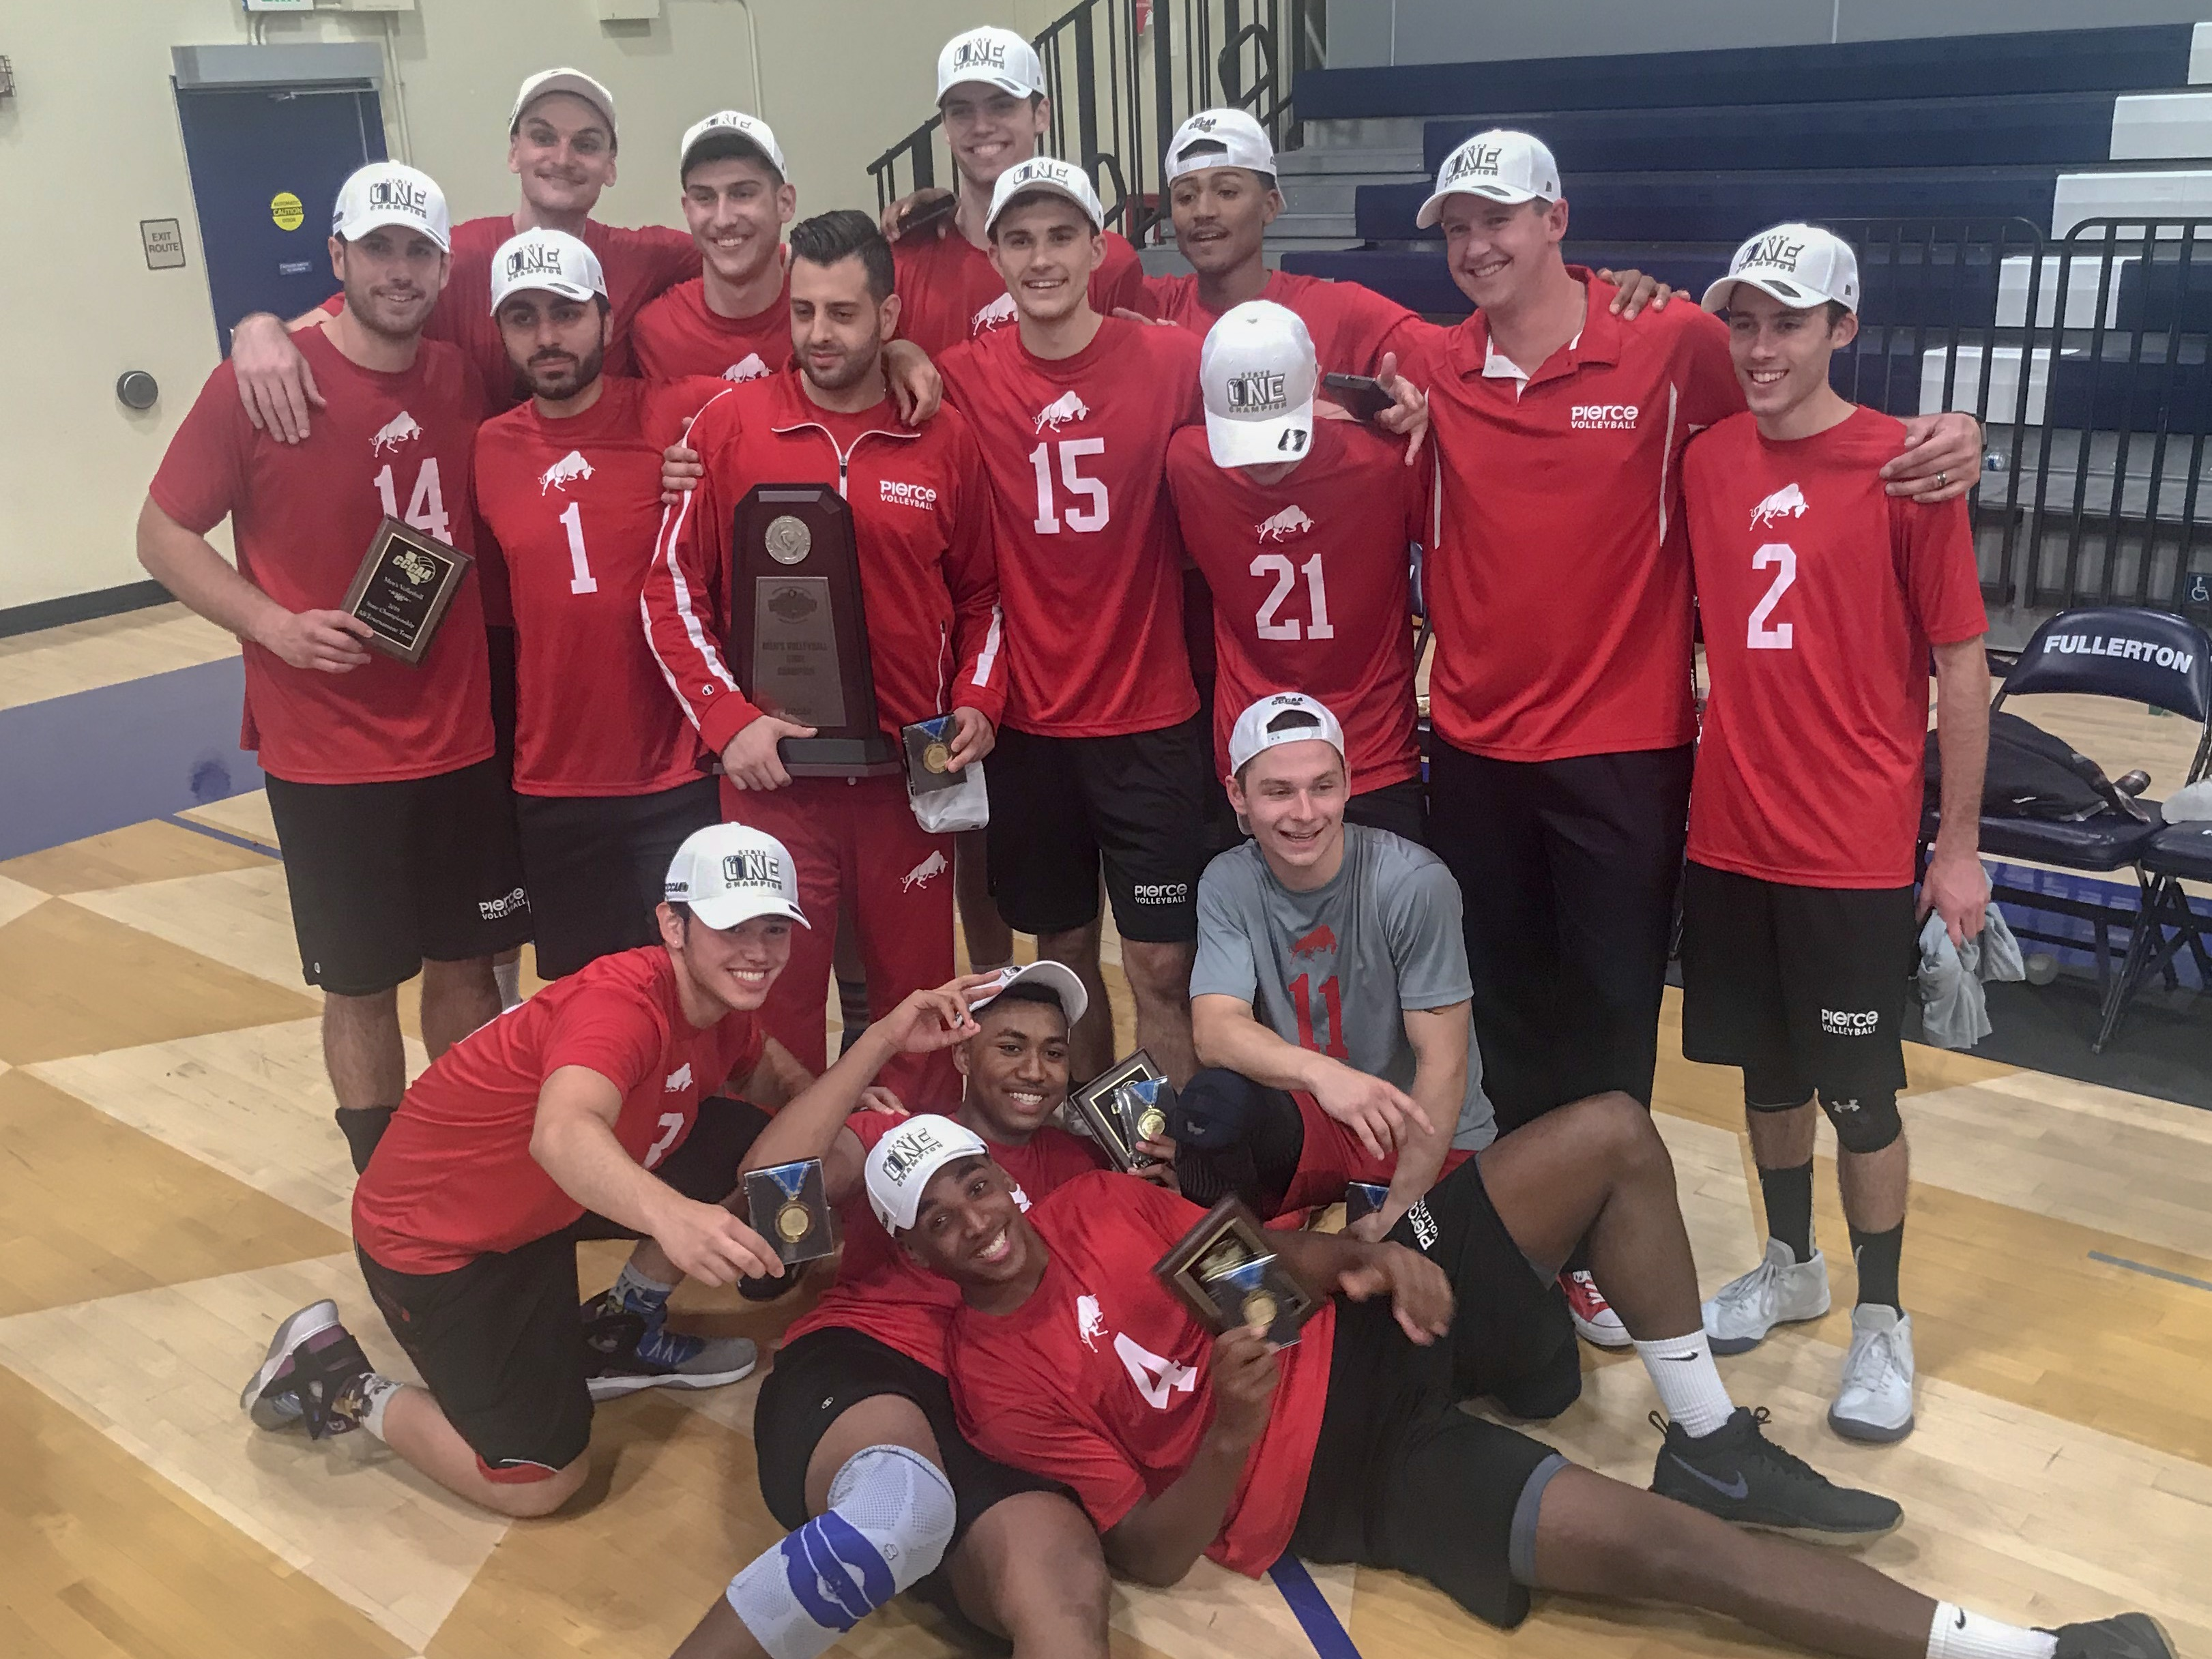 Men's Volleyball claims 2018 State Championship